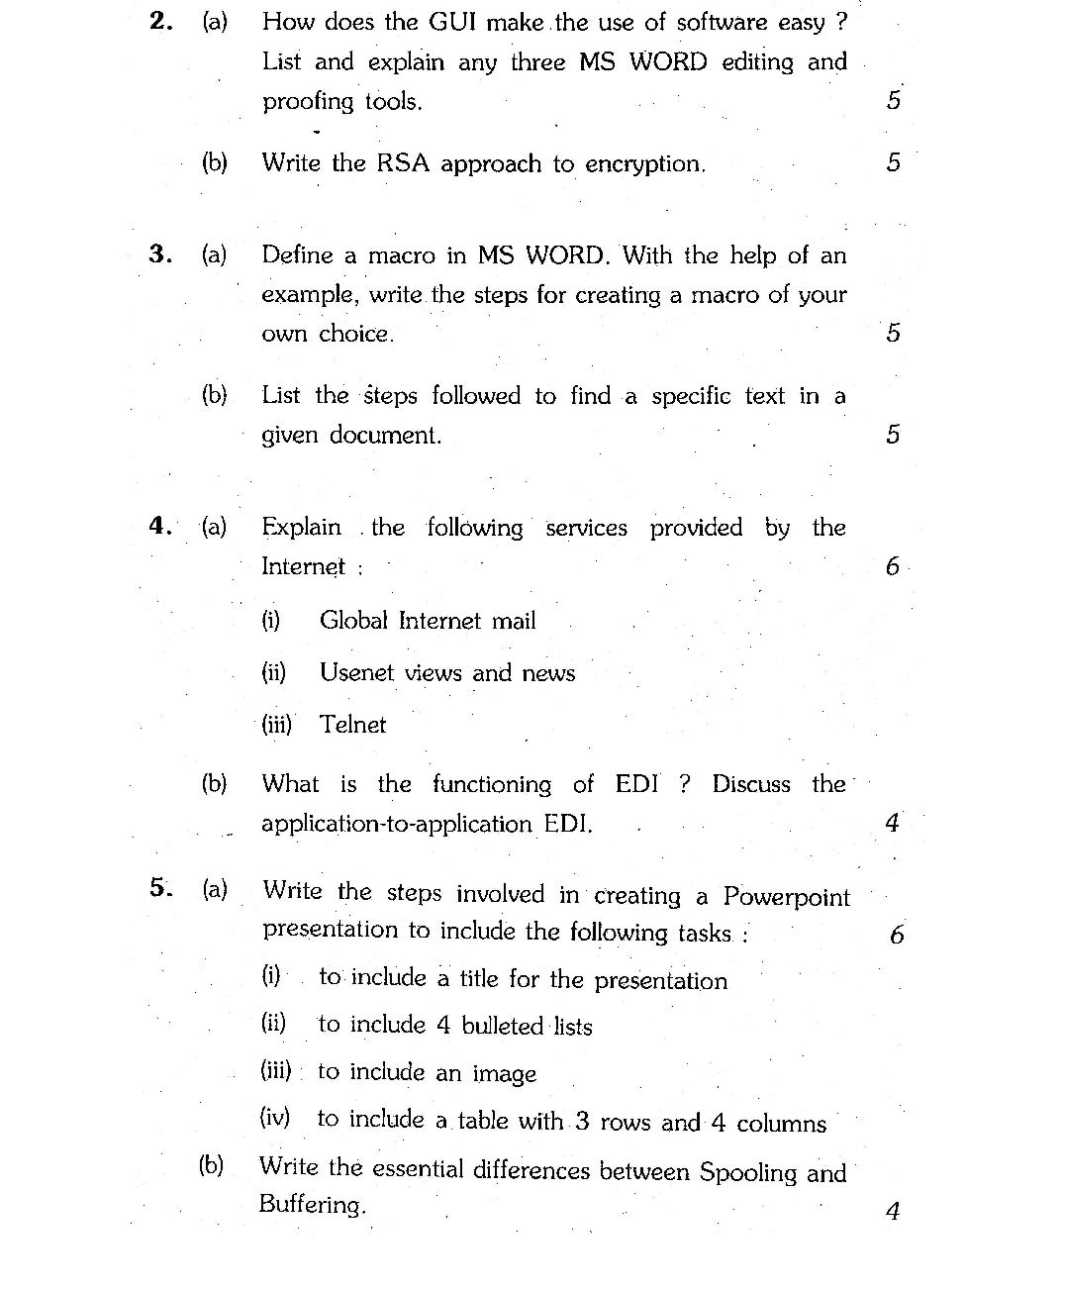 009 Ignou Computer Paper Grabbers For Essays Essay Imposing Good Interesting Attention College Full